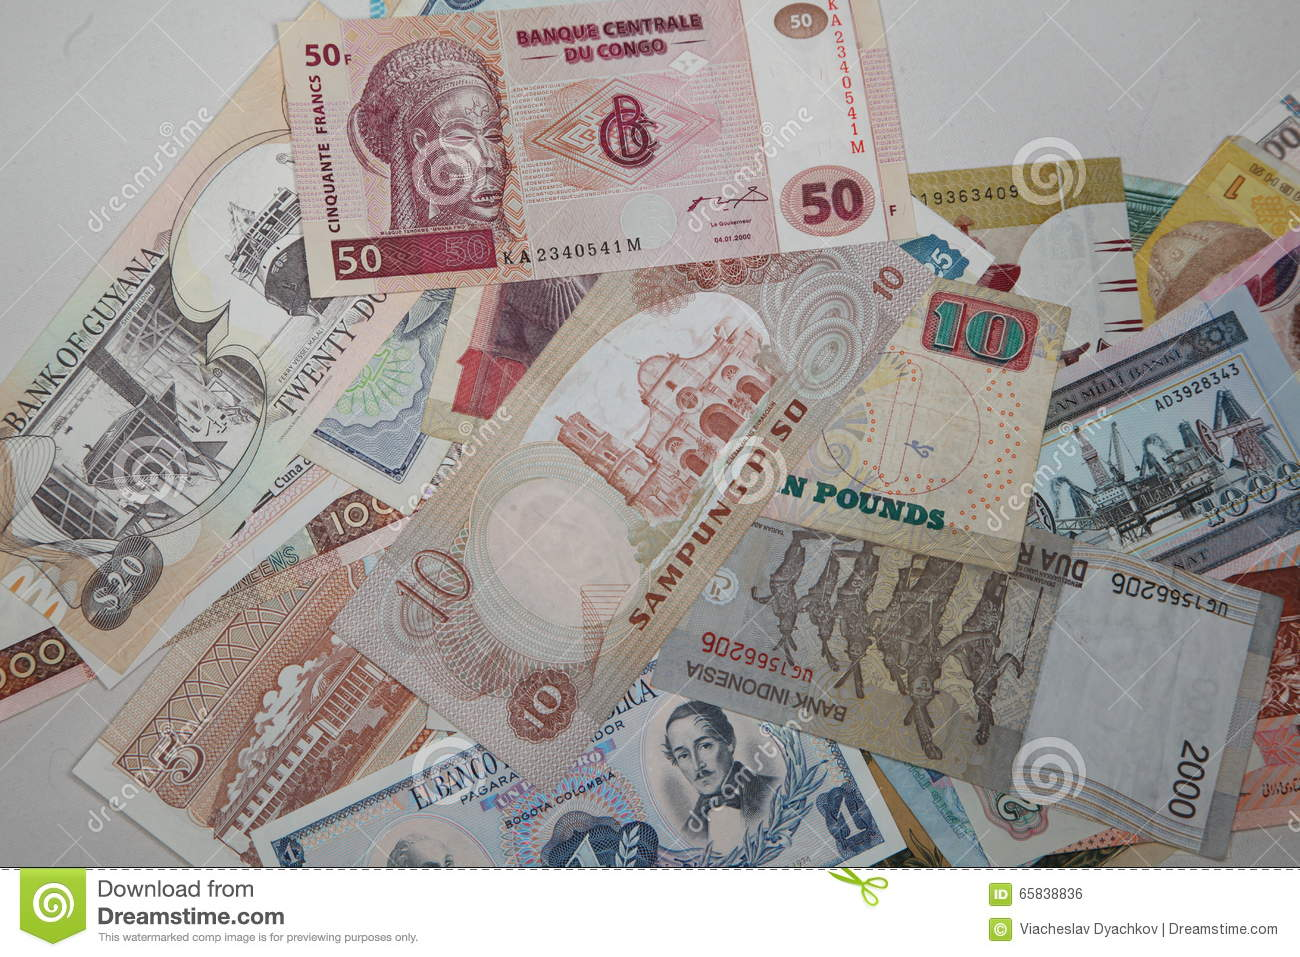 Collection of banknotes of different countries